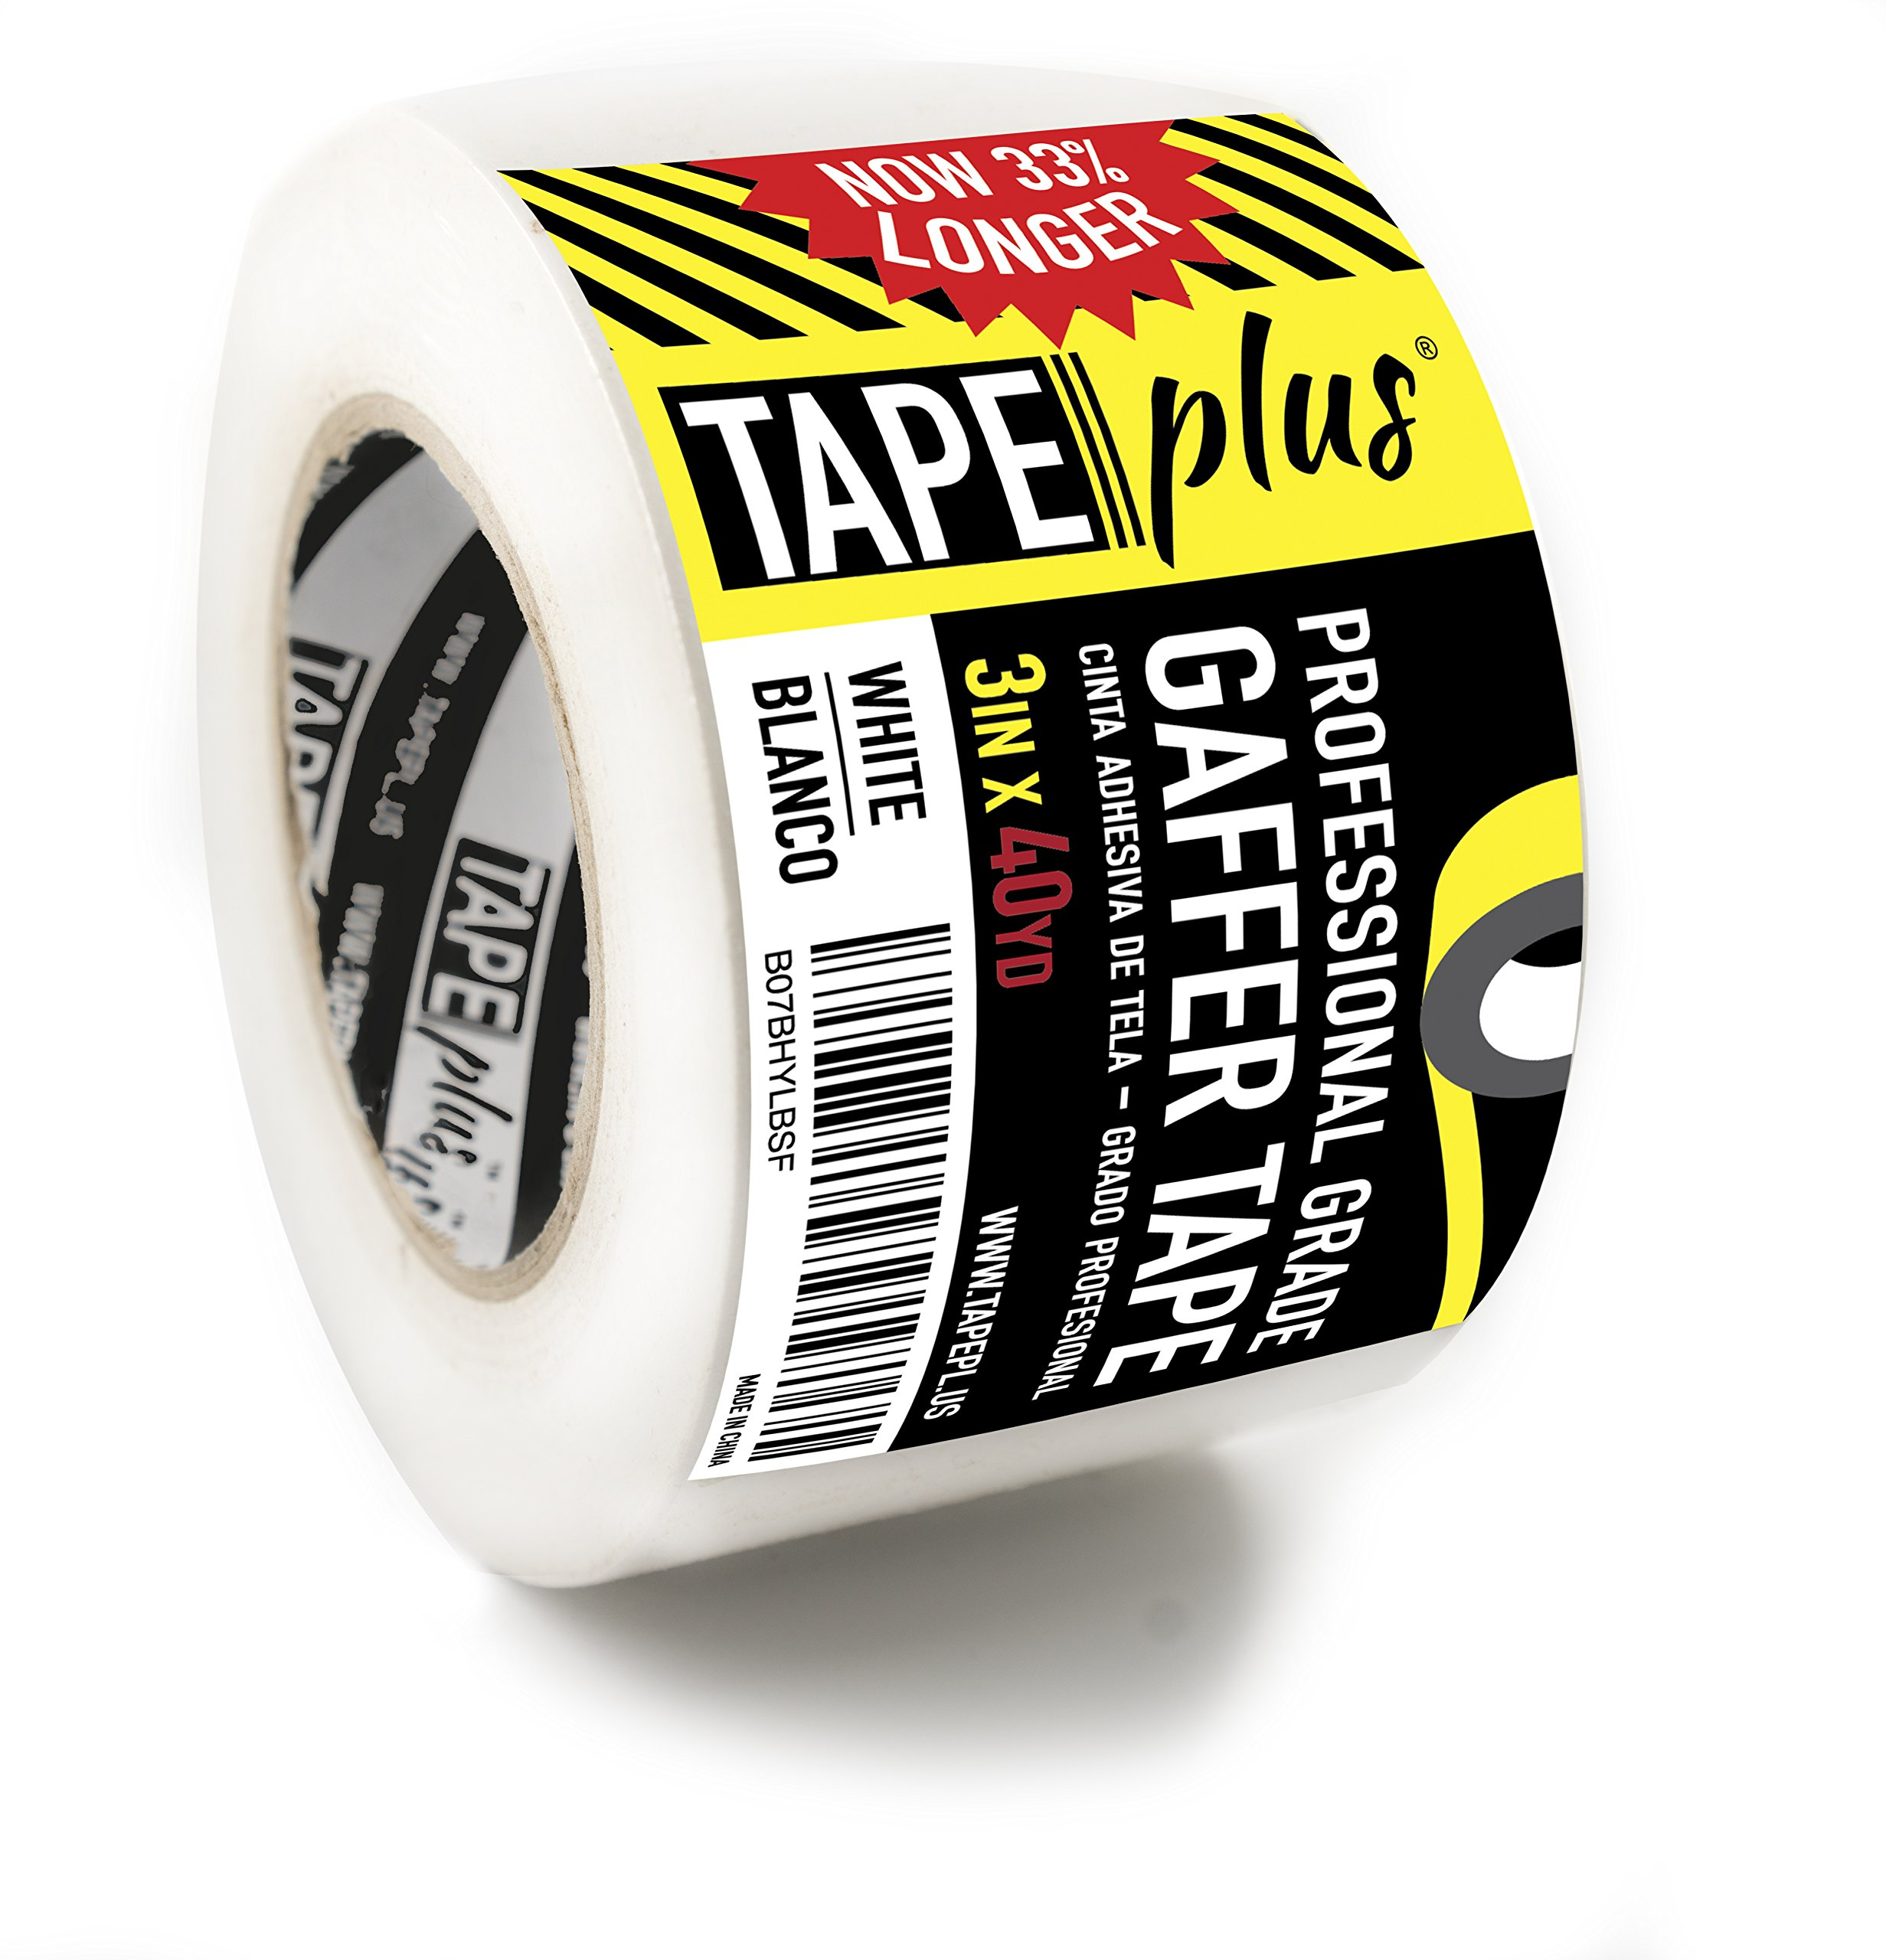 Gaffers Tape - 3 inch by 40 Yards in White - Get 33% More! High End Professional Grade - Gaffer Tape is The Perfect Alternative to Duct Tape, Electrical Tape, and Other Adhesives